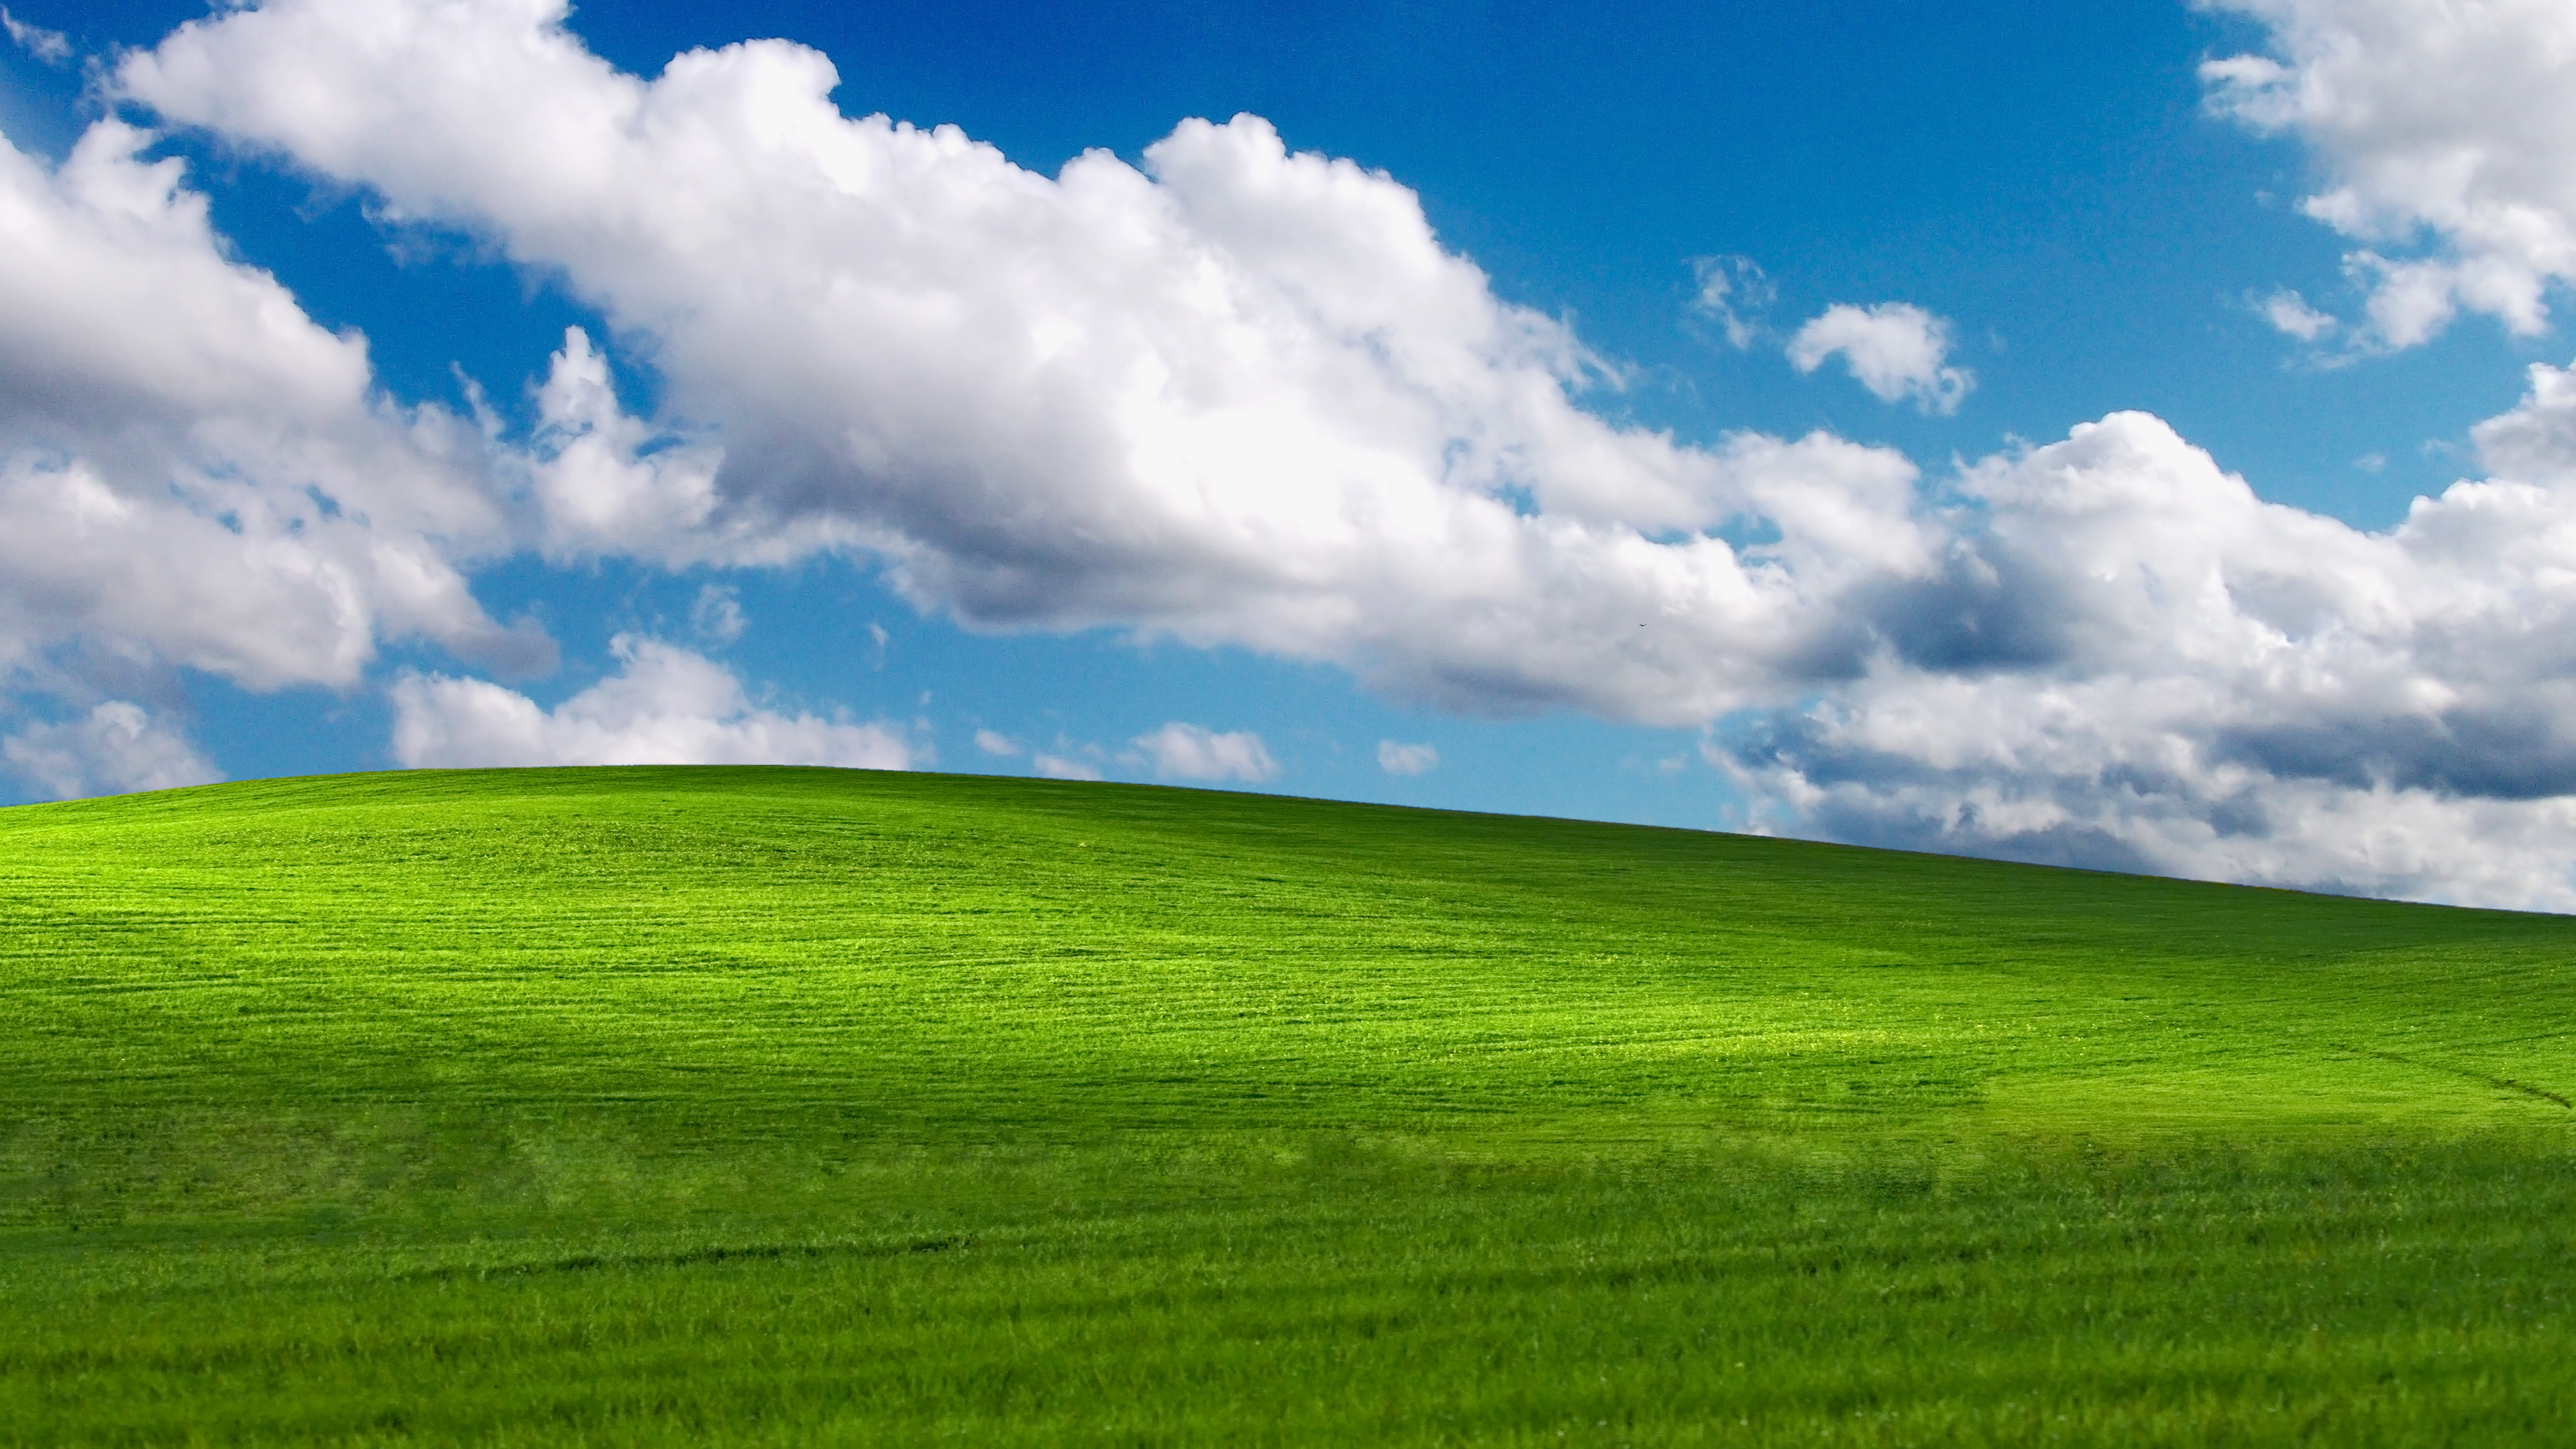 3840x2160 Windows XP Bliss Wallpaper